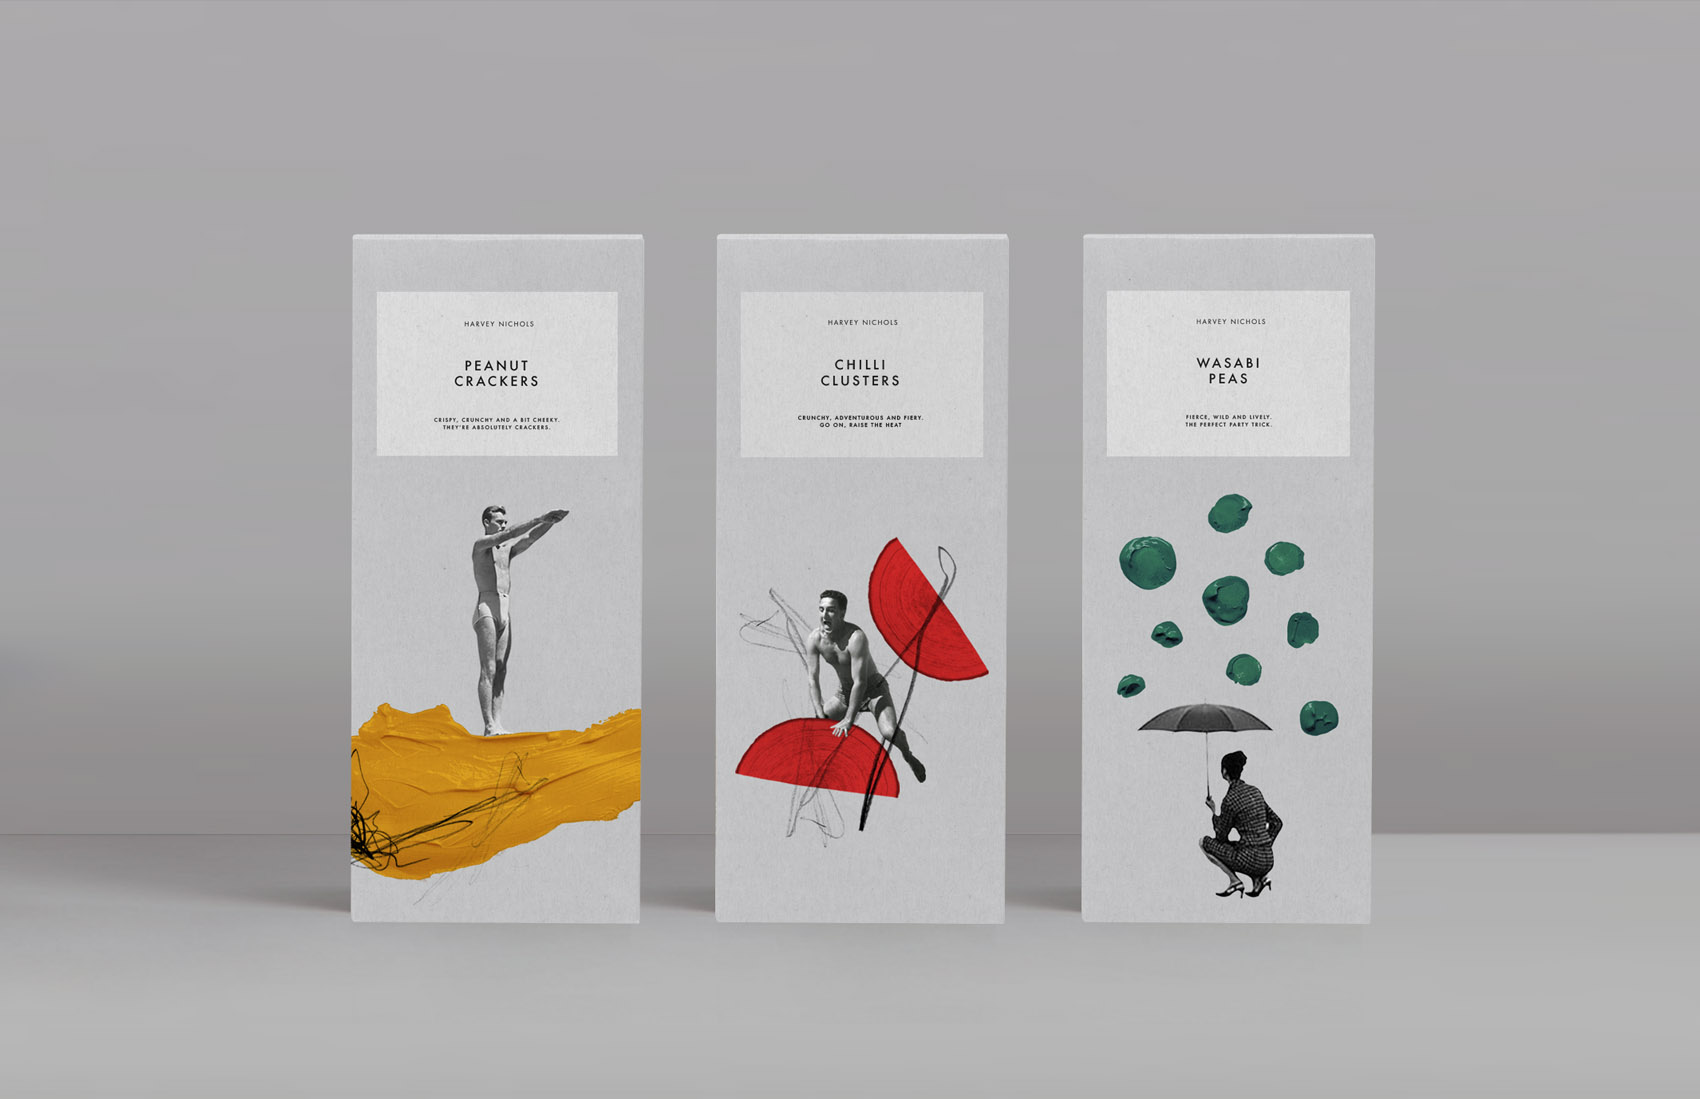 Alphabet Concept Design for Harvey Nichols Food Store Packaging